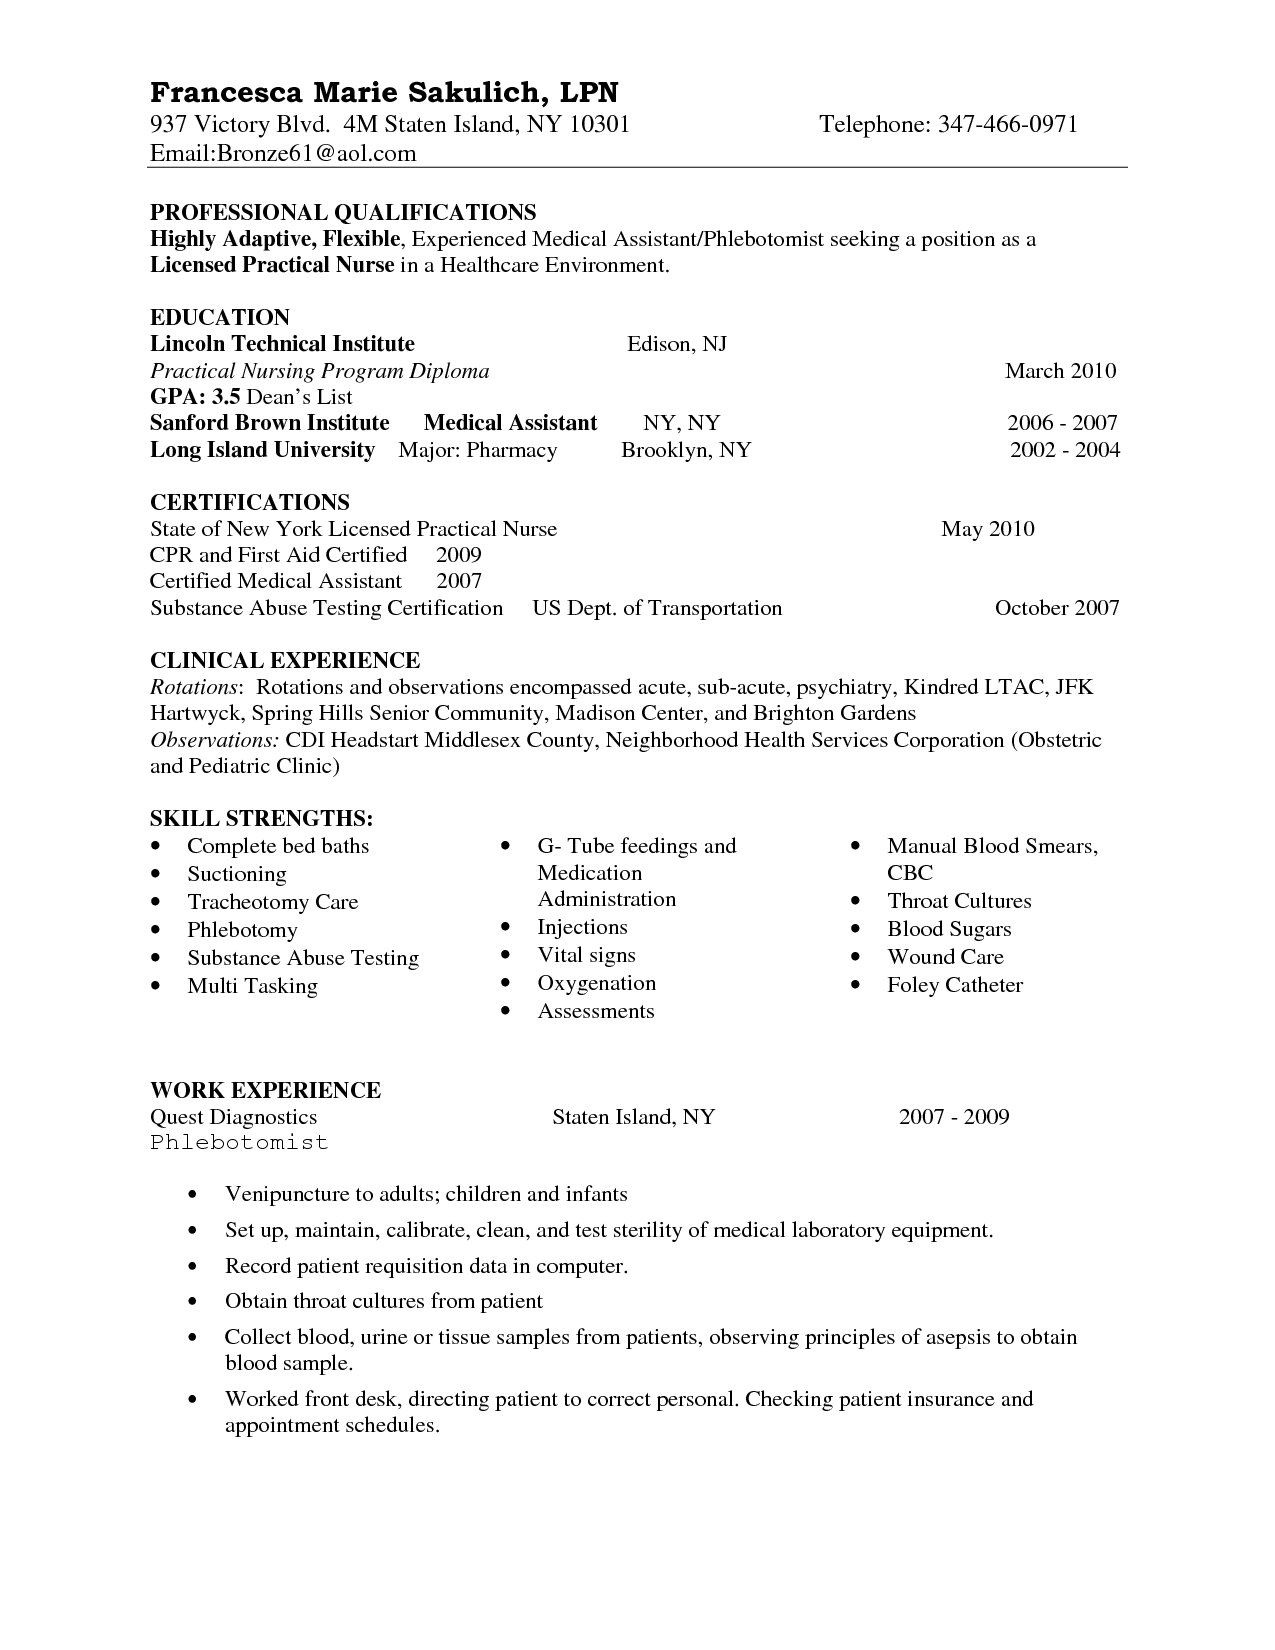 Cv Resume Entry Level Lpn Resume Sample  Nursing  Pinterest  Nursing Resume